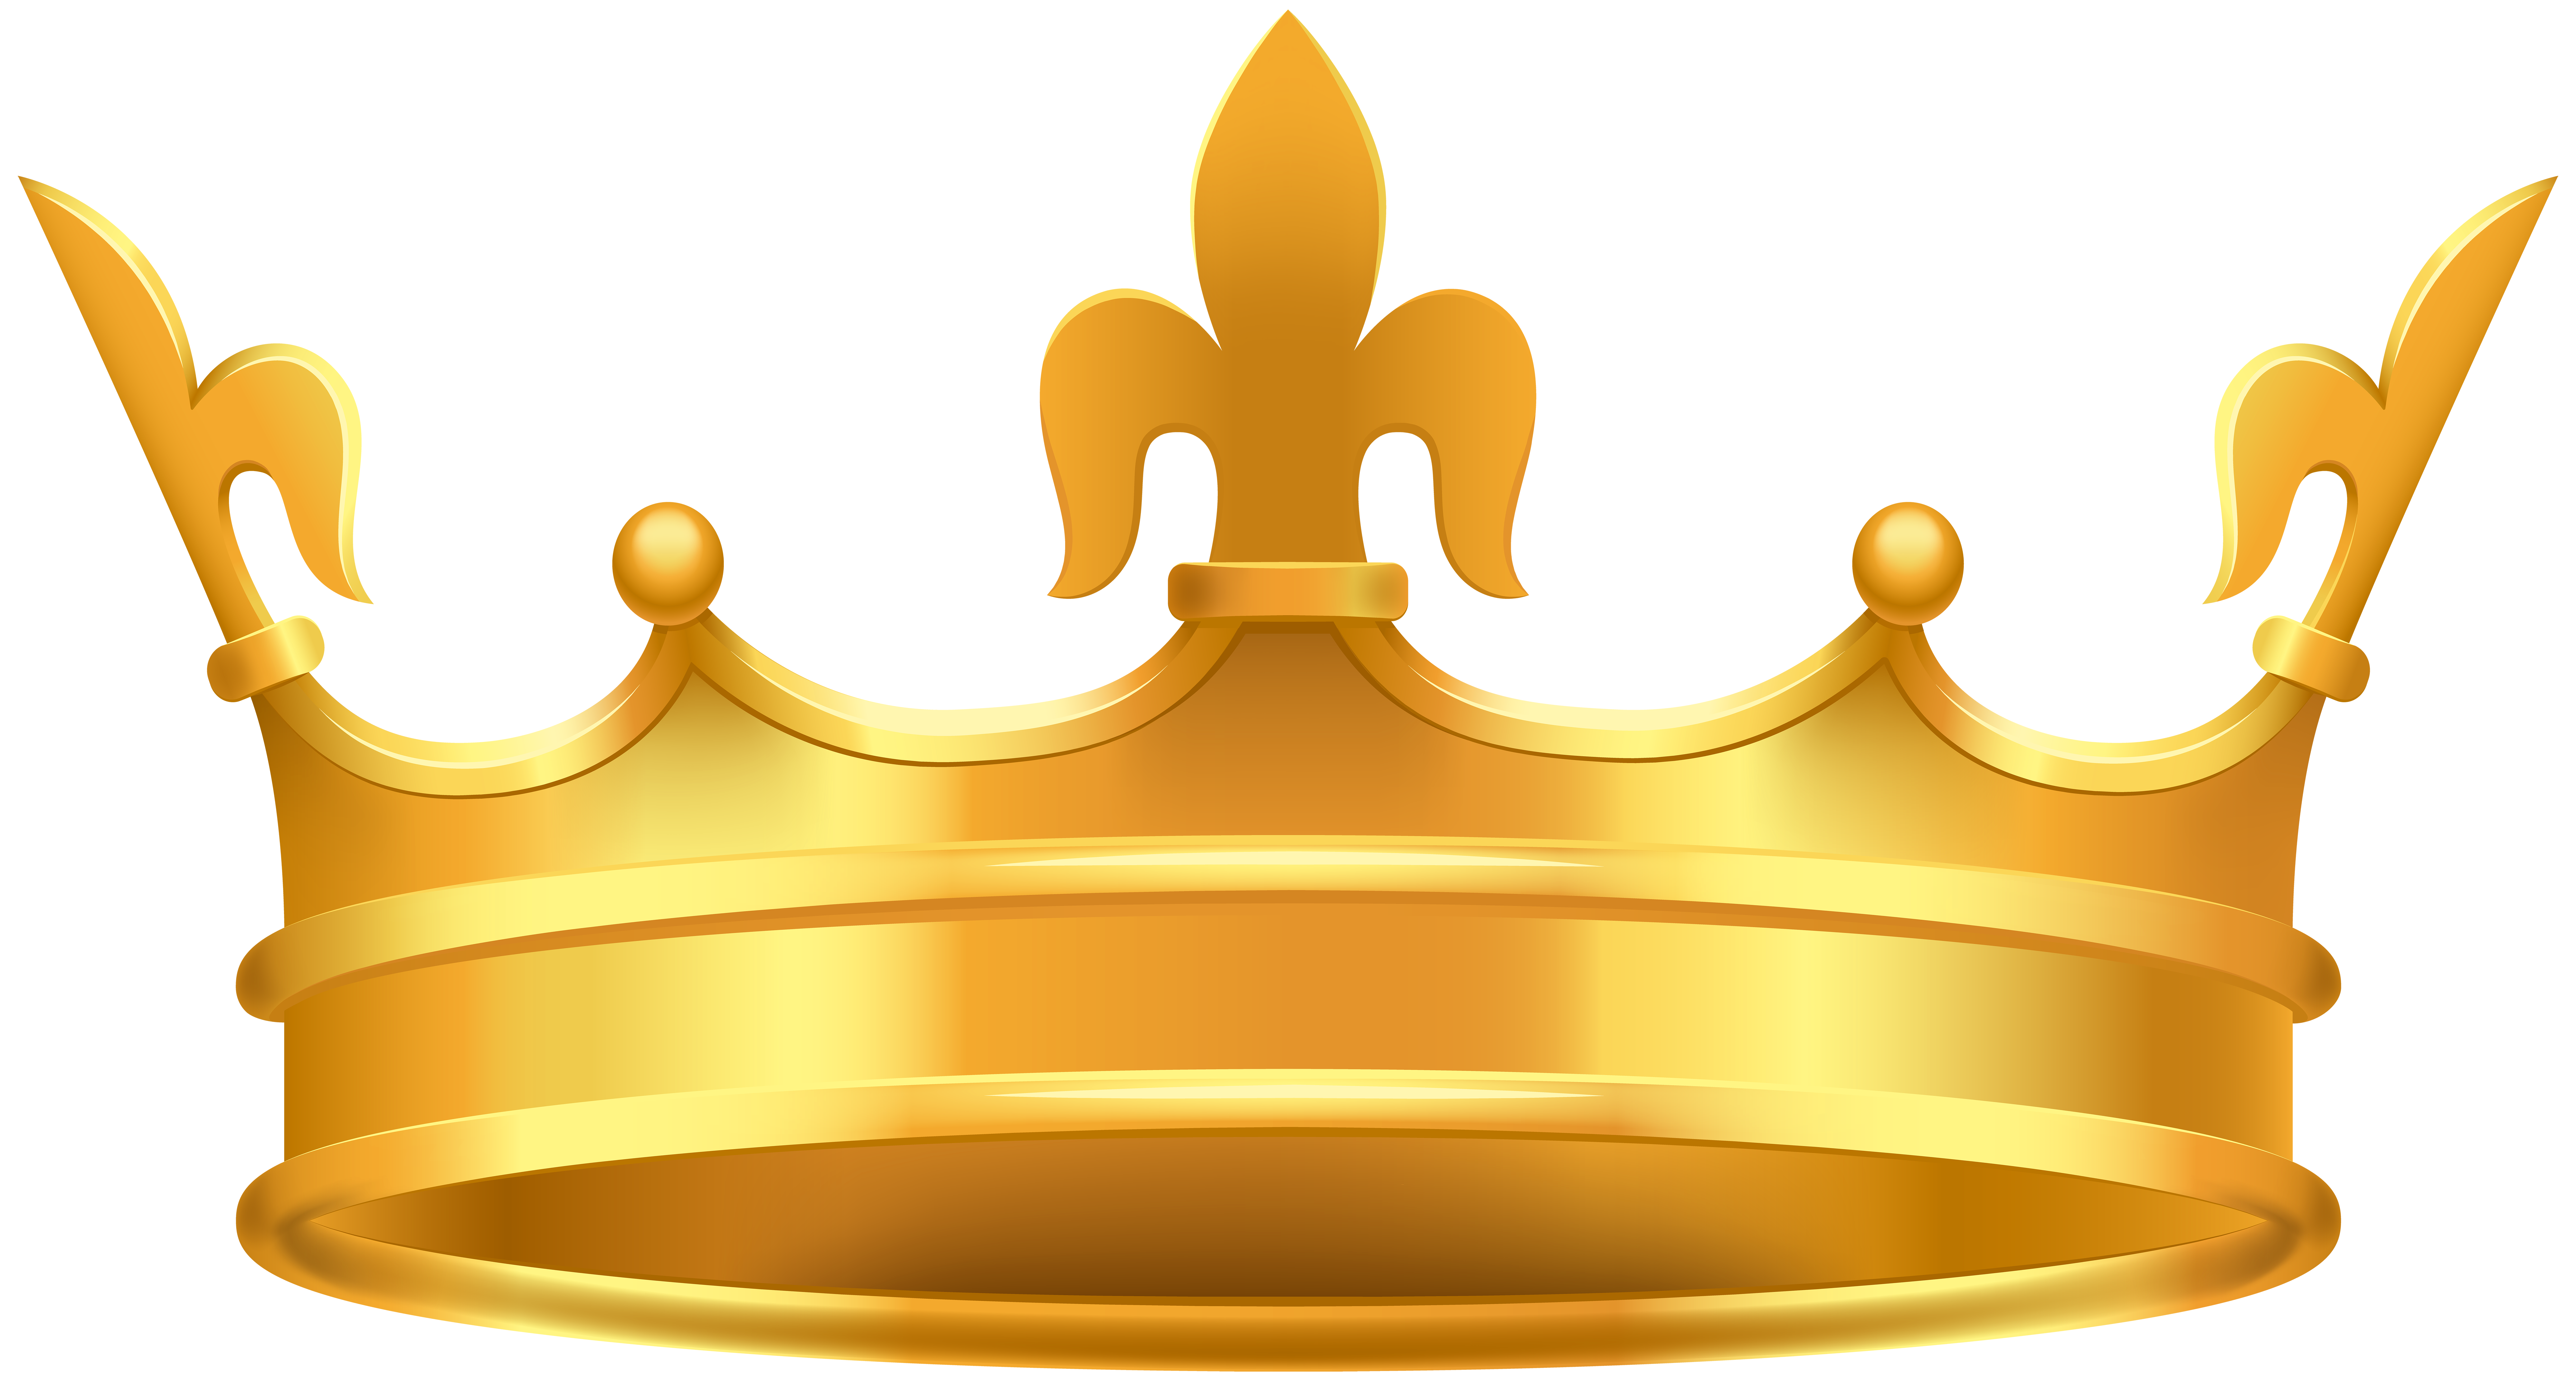 Crown clip art png. Image gallery yopriceville high